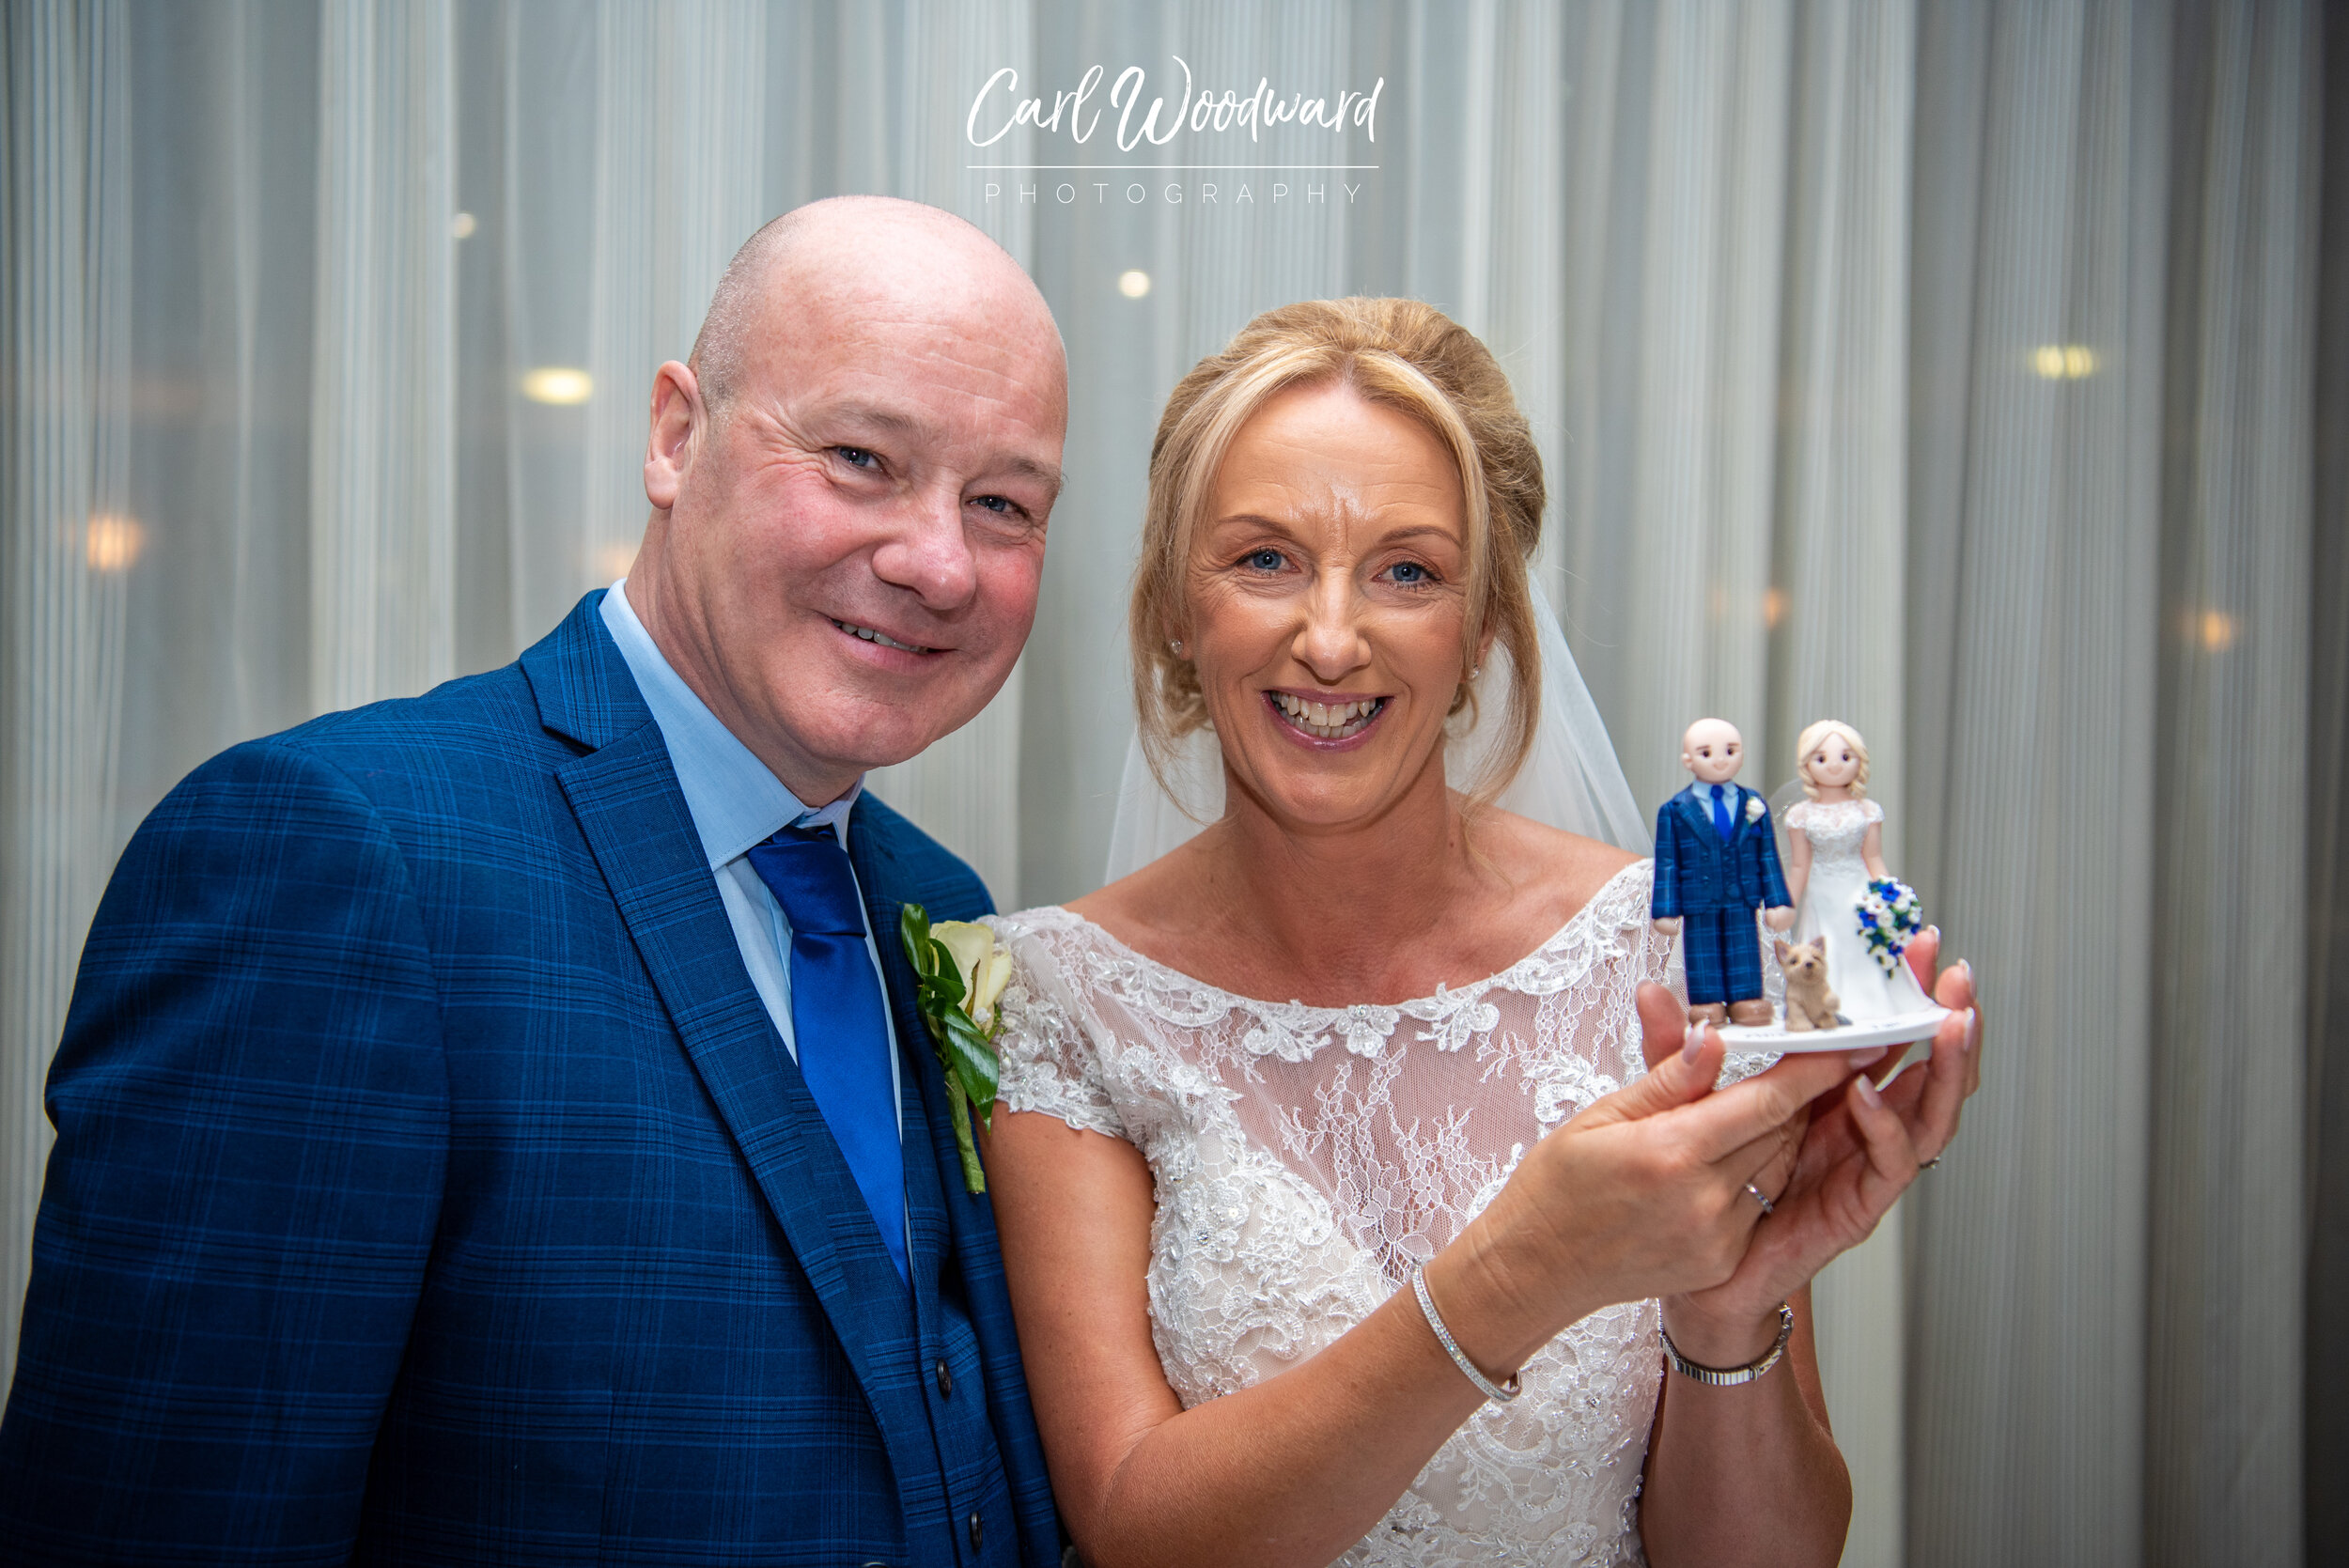 009-Cardiff-Wedding-Photographer-South-Wales-Wedding-Photography.jpg